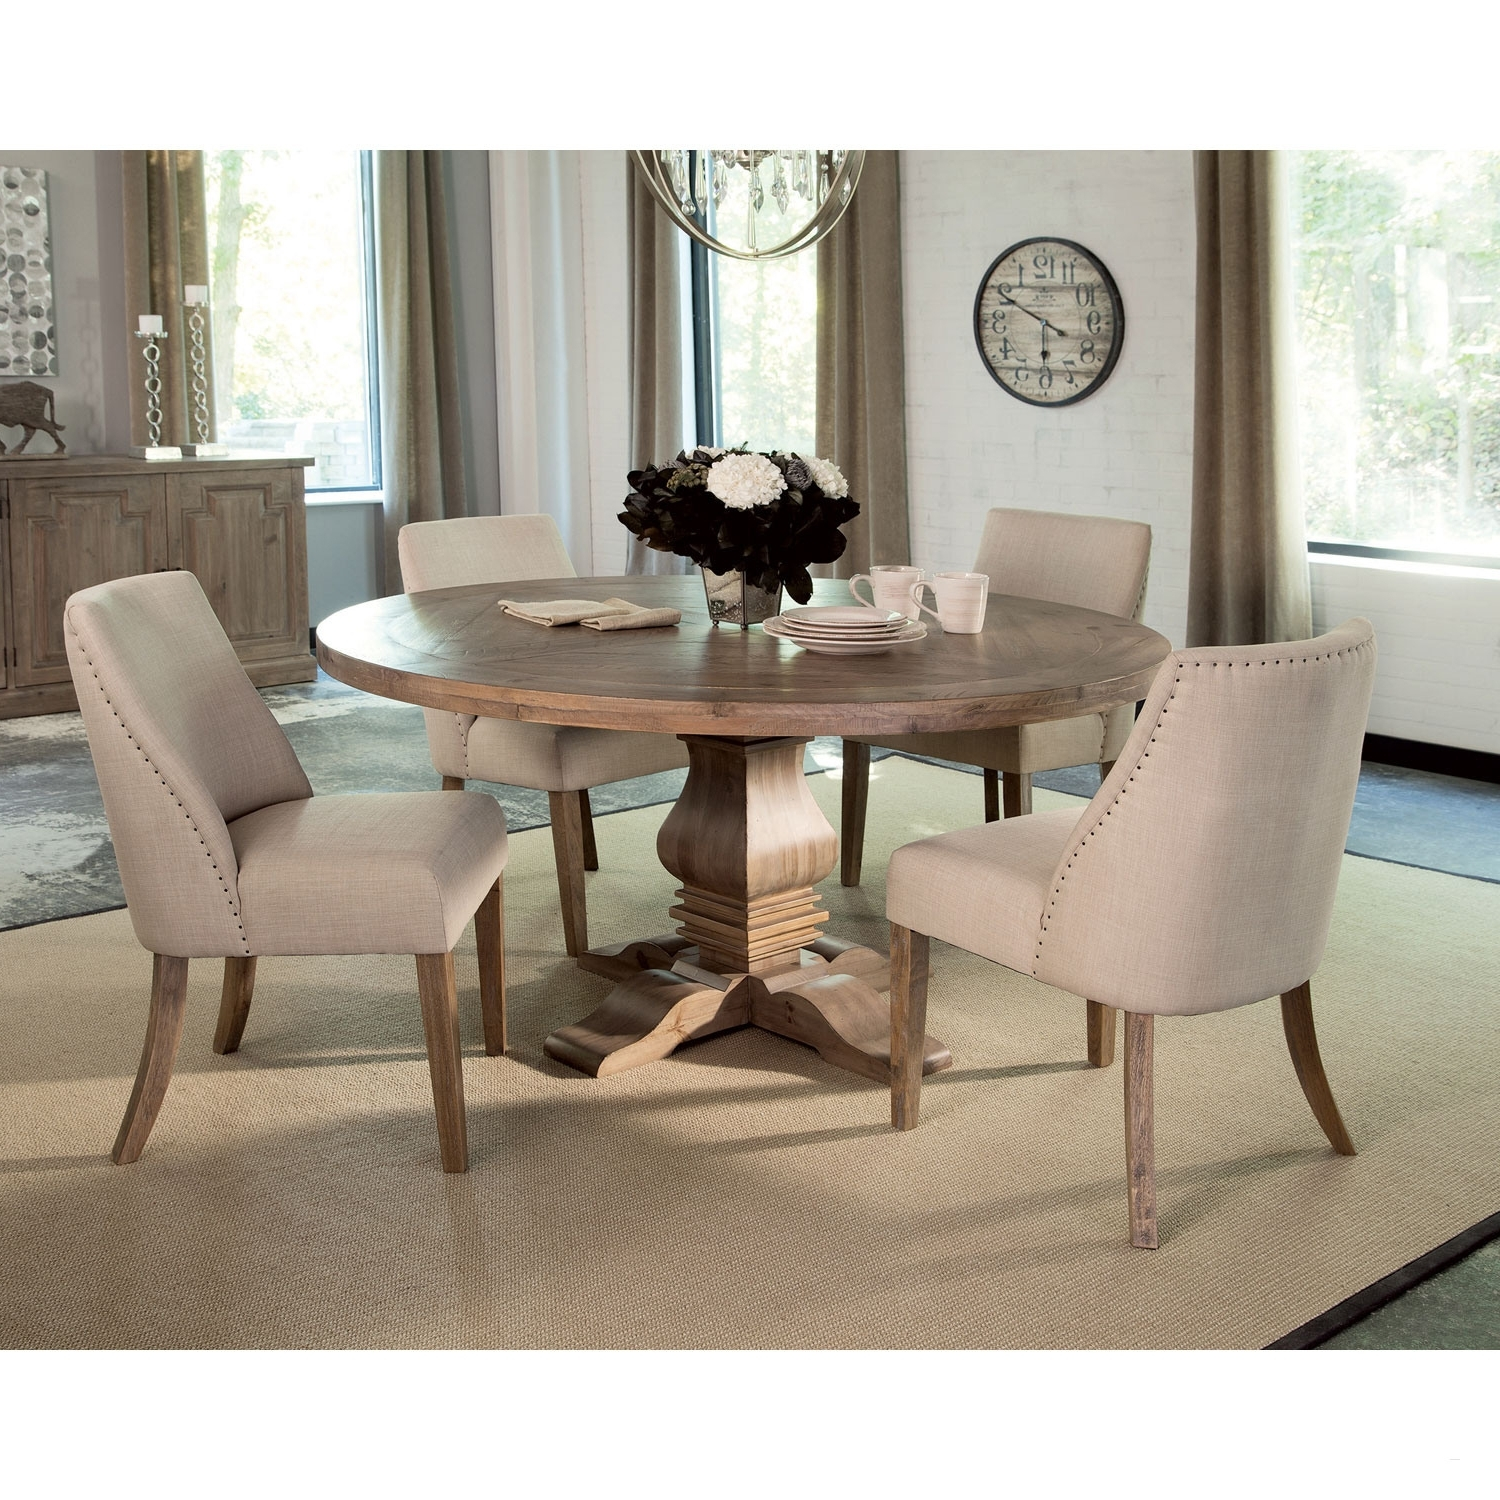 Fetching Circle Kitchen Table With Macie Round Dining Table Pertaining To Popular Macie Round Dining Tables (View 3 of 25)